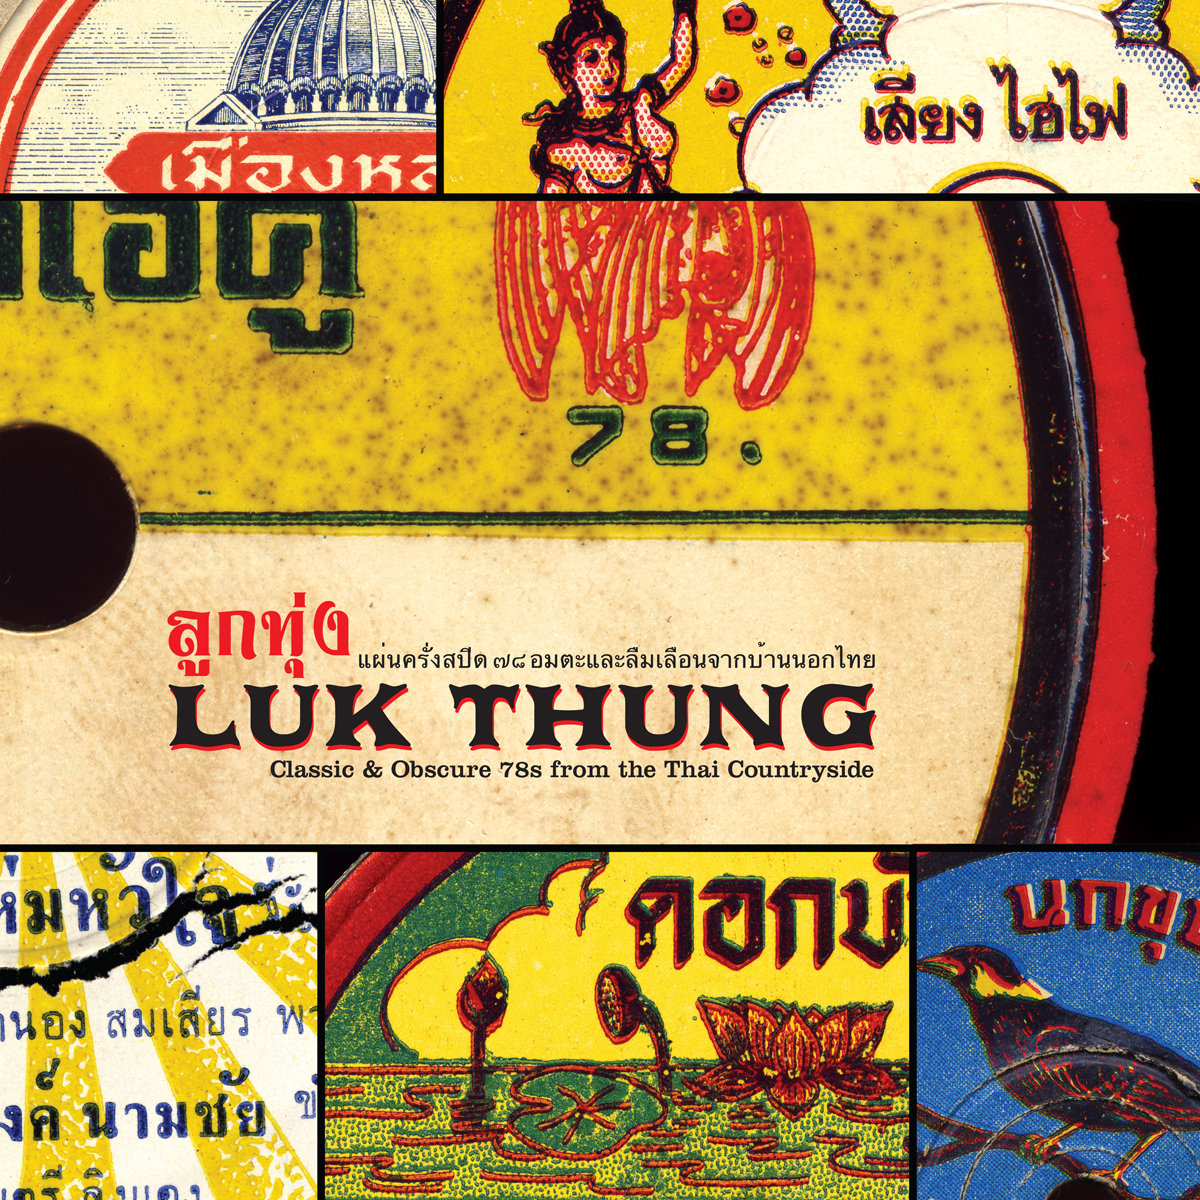 Luk Thung: Classic & Obscure 78s from the Thai Countryside  Release Date: March 1, 2011 Label: Parlortone/Dust-to-Digital  SERVICE: Restoration, Mastering SOURCE MATERIAL: 78 rpm Records NUMBER OF DISCS: 1 GENRE: World FORMAT: CD and LP